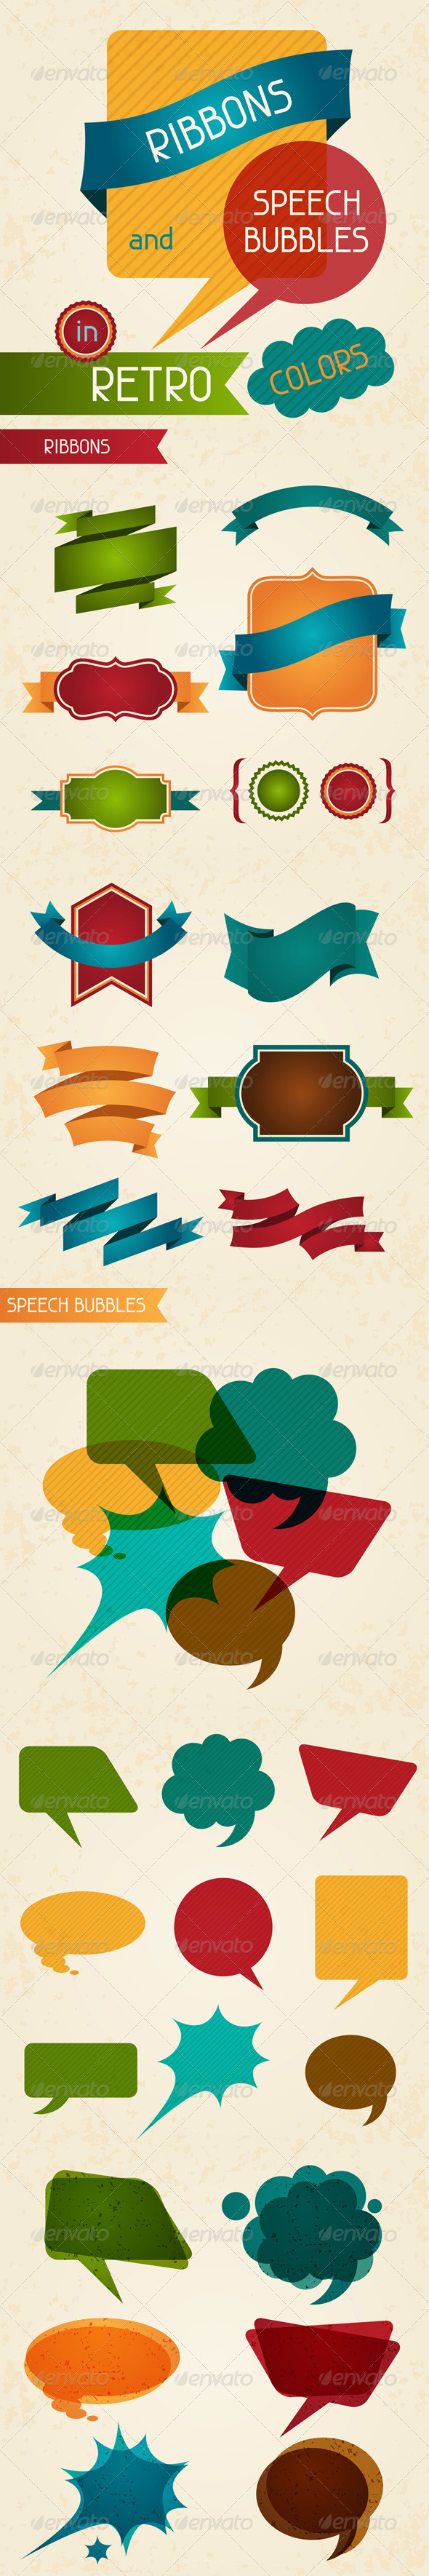 GraphicRiver Ribbons and speech bubbles in retro colors 4995916